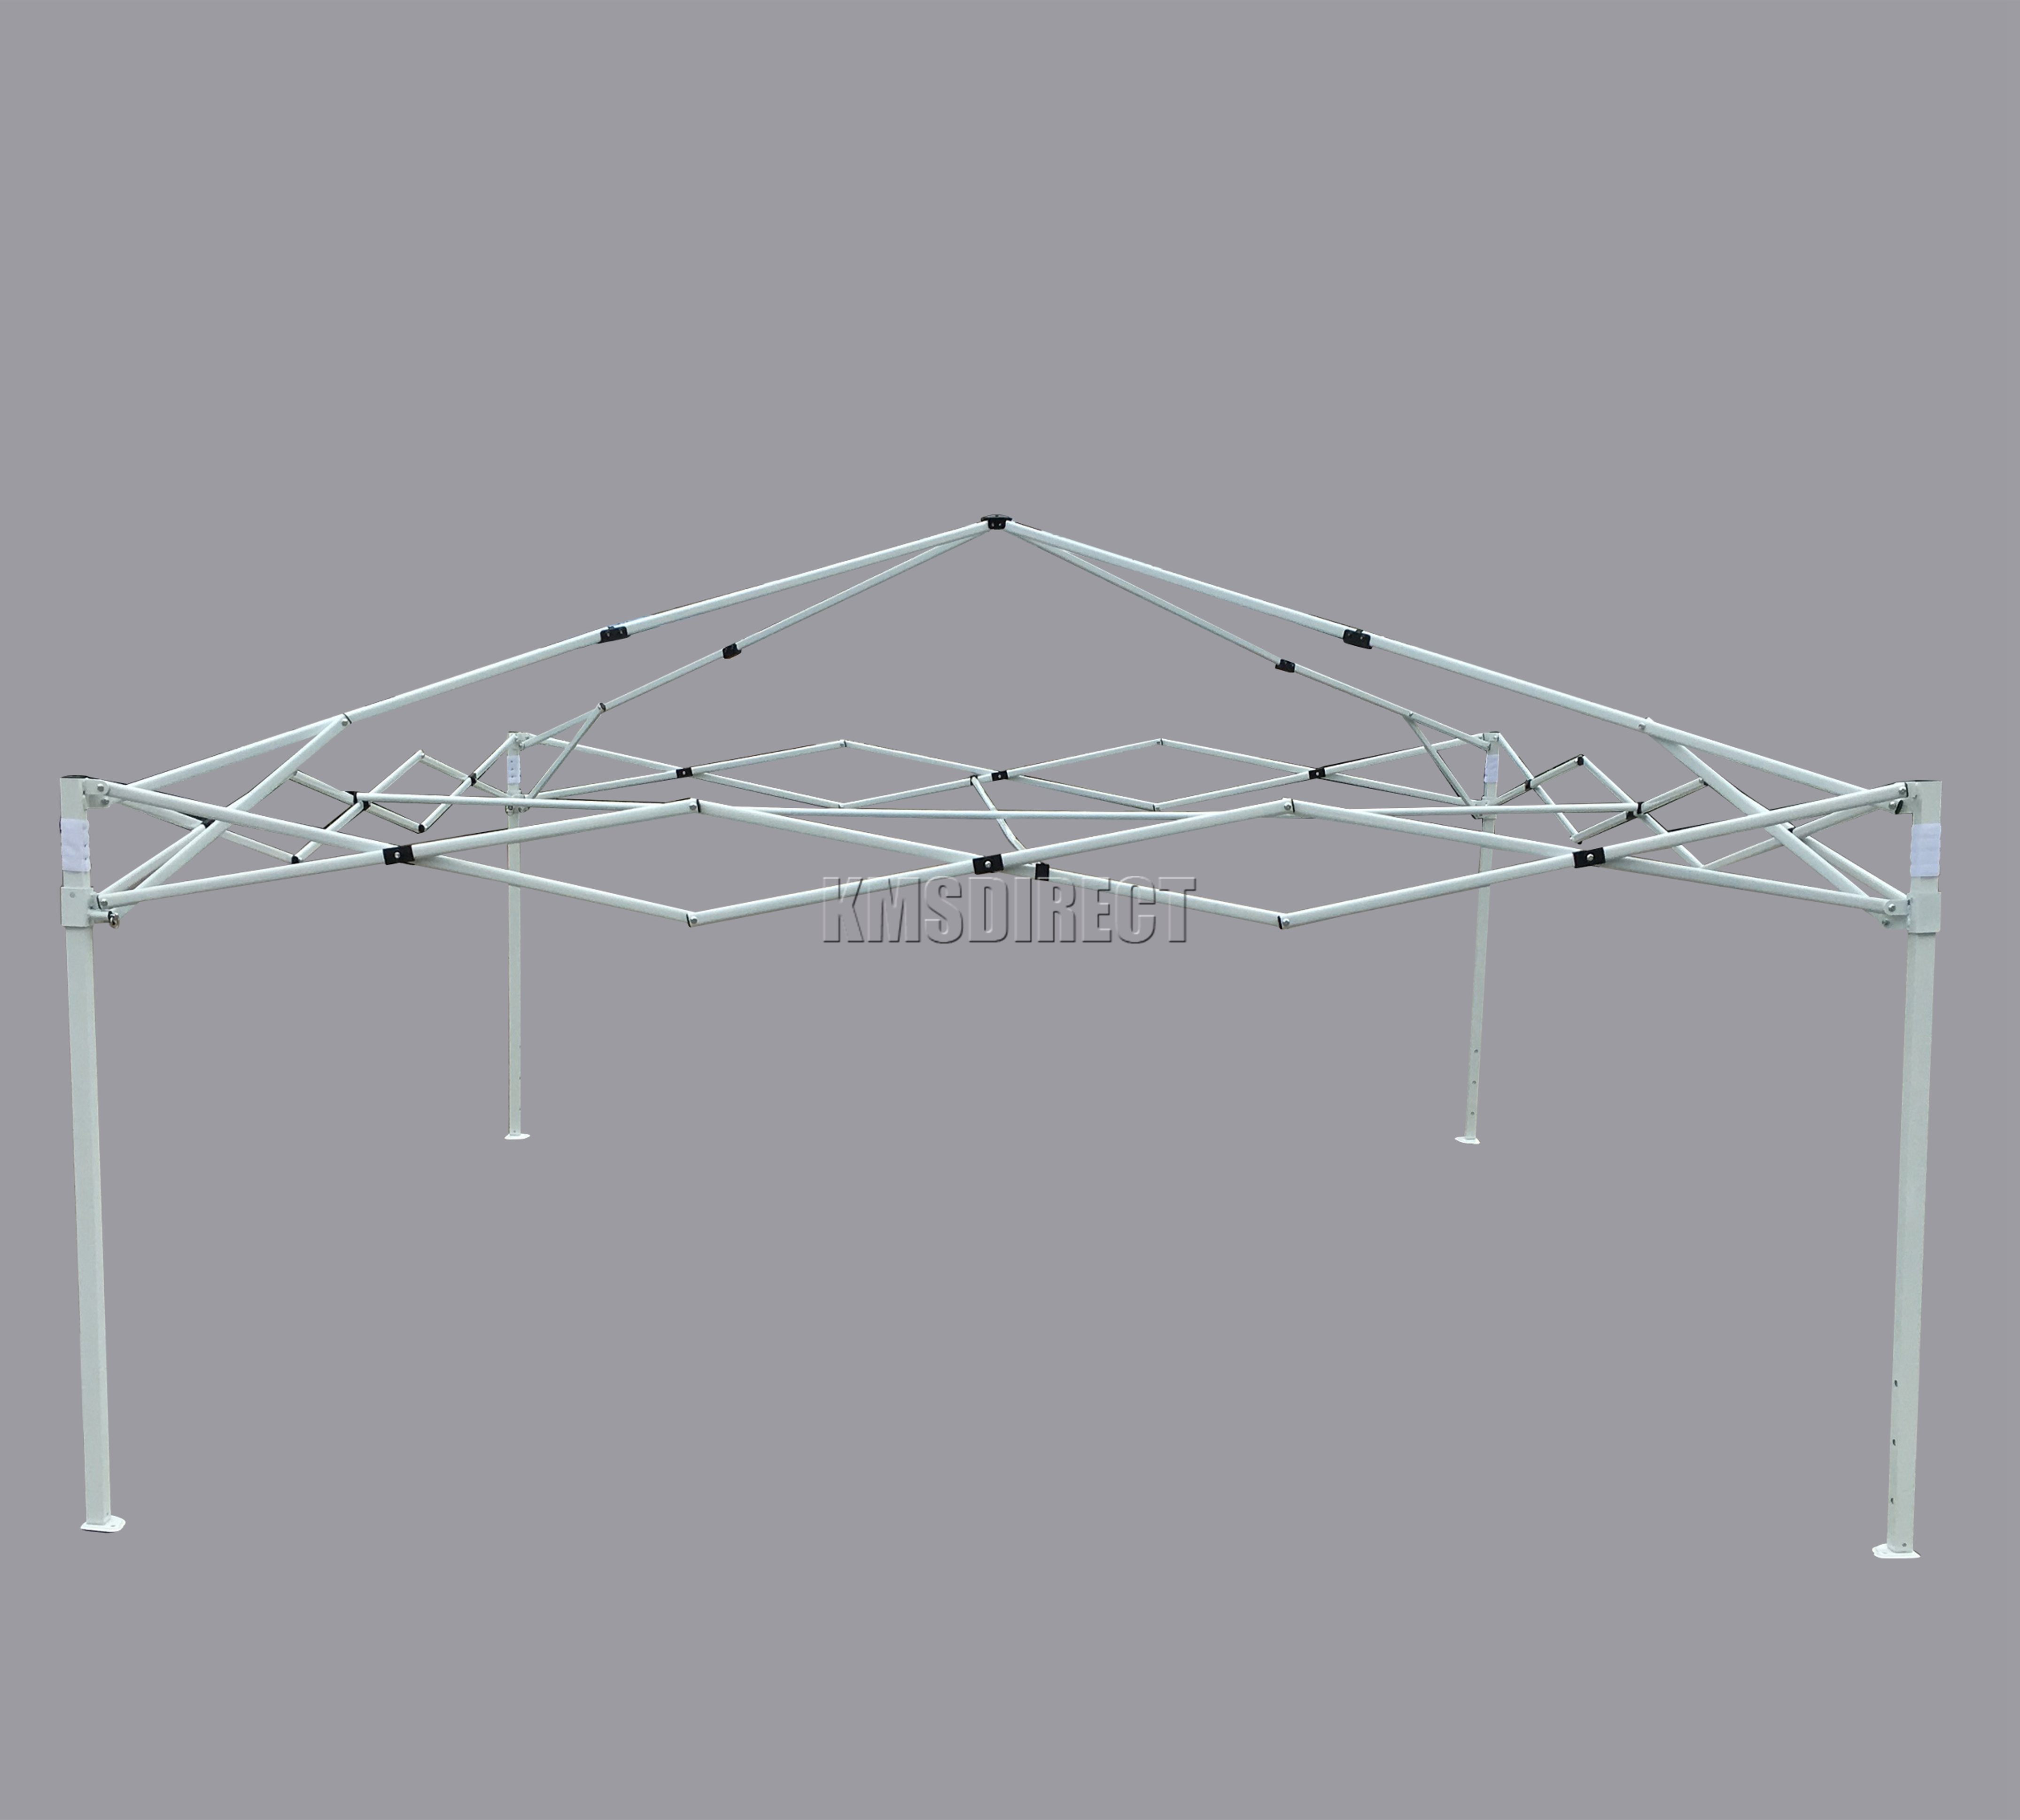 Sentinel FoxHunter Waterproof 3x3m Pop Up Gazebo Marquee Garden Awning Party Tent Grey